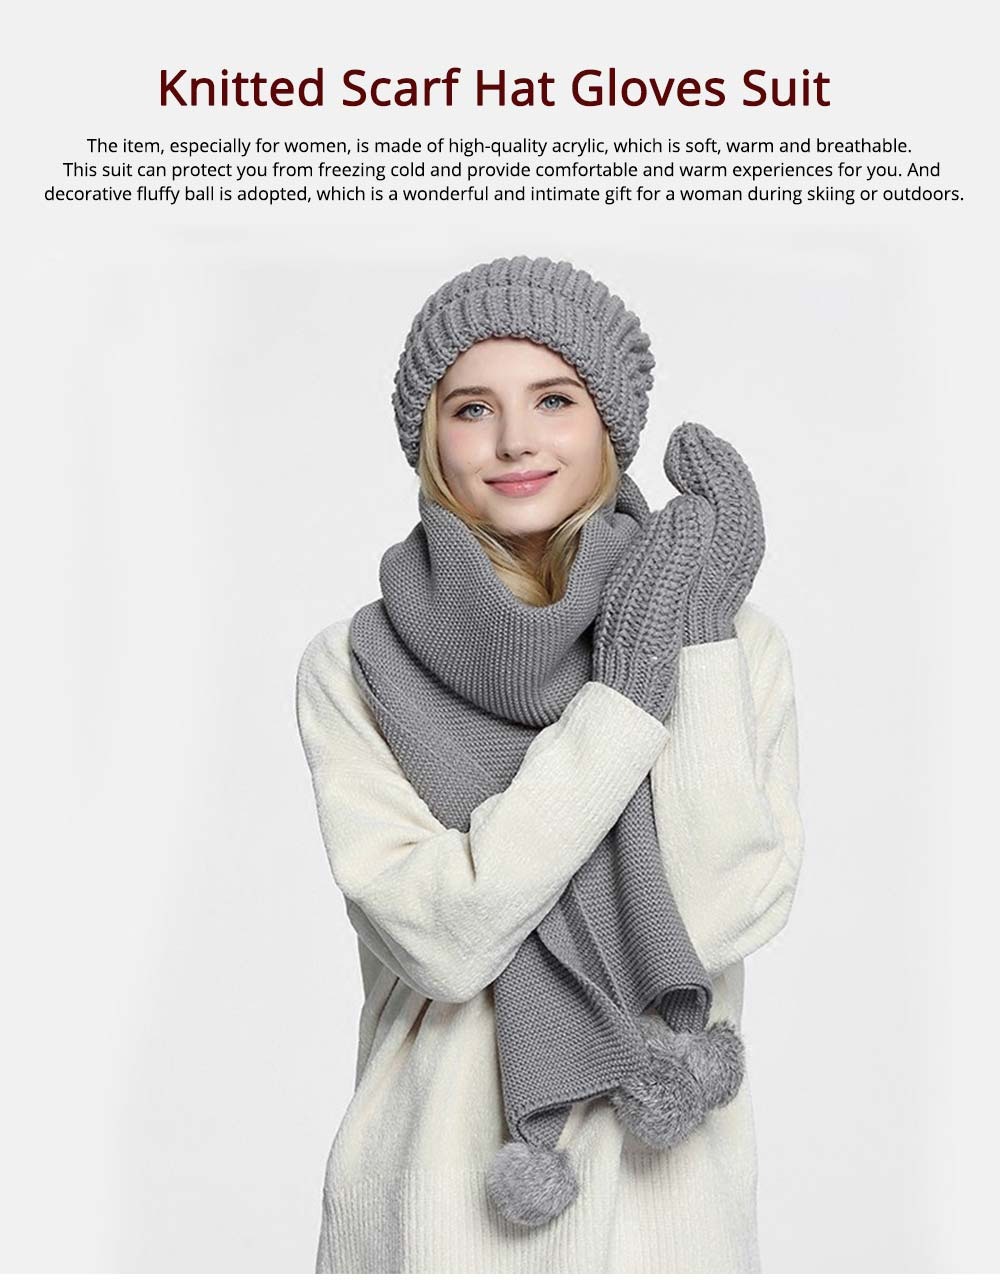 Women's Accessories - Minimalist Winter Women Hat Scarf Gloves Suit, Warm Breathable Acrylic Knitted Beanie Hat and Circle Scarf 7